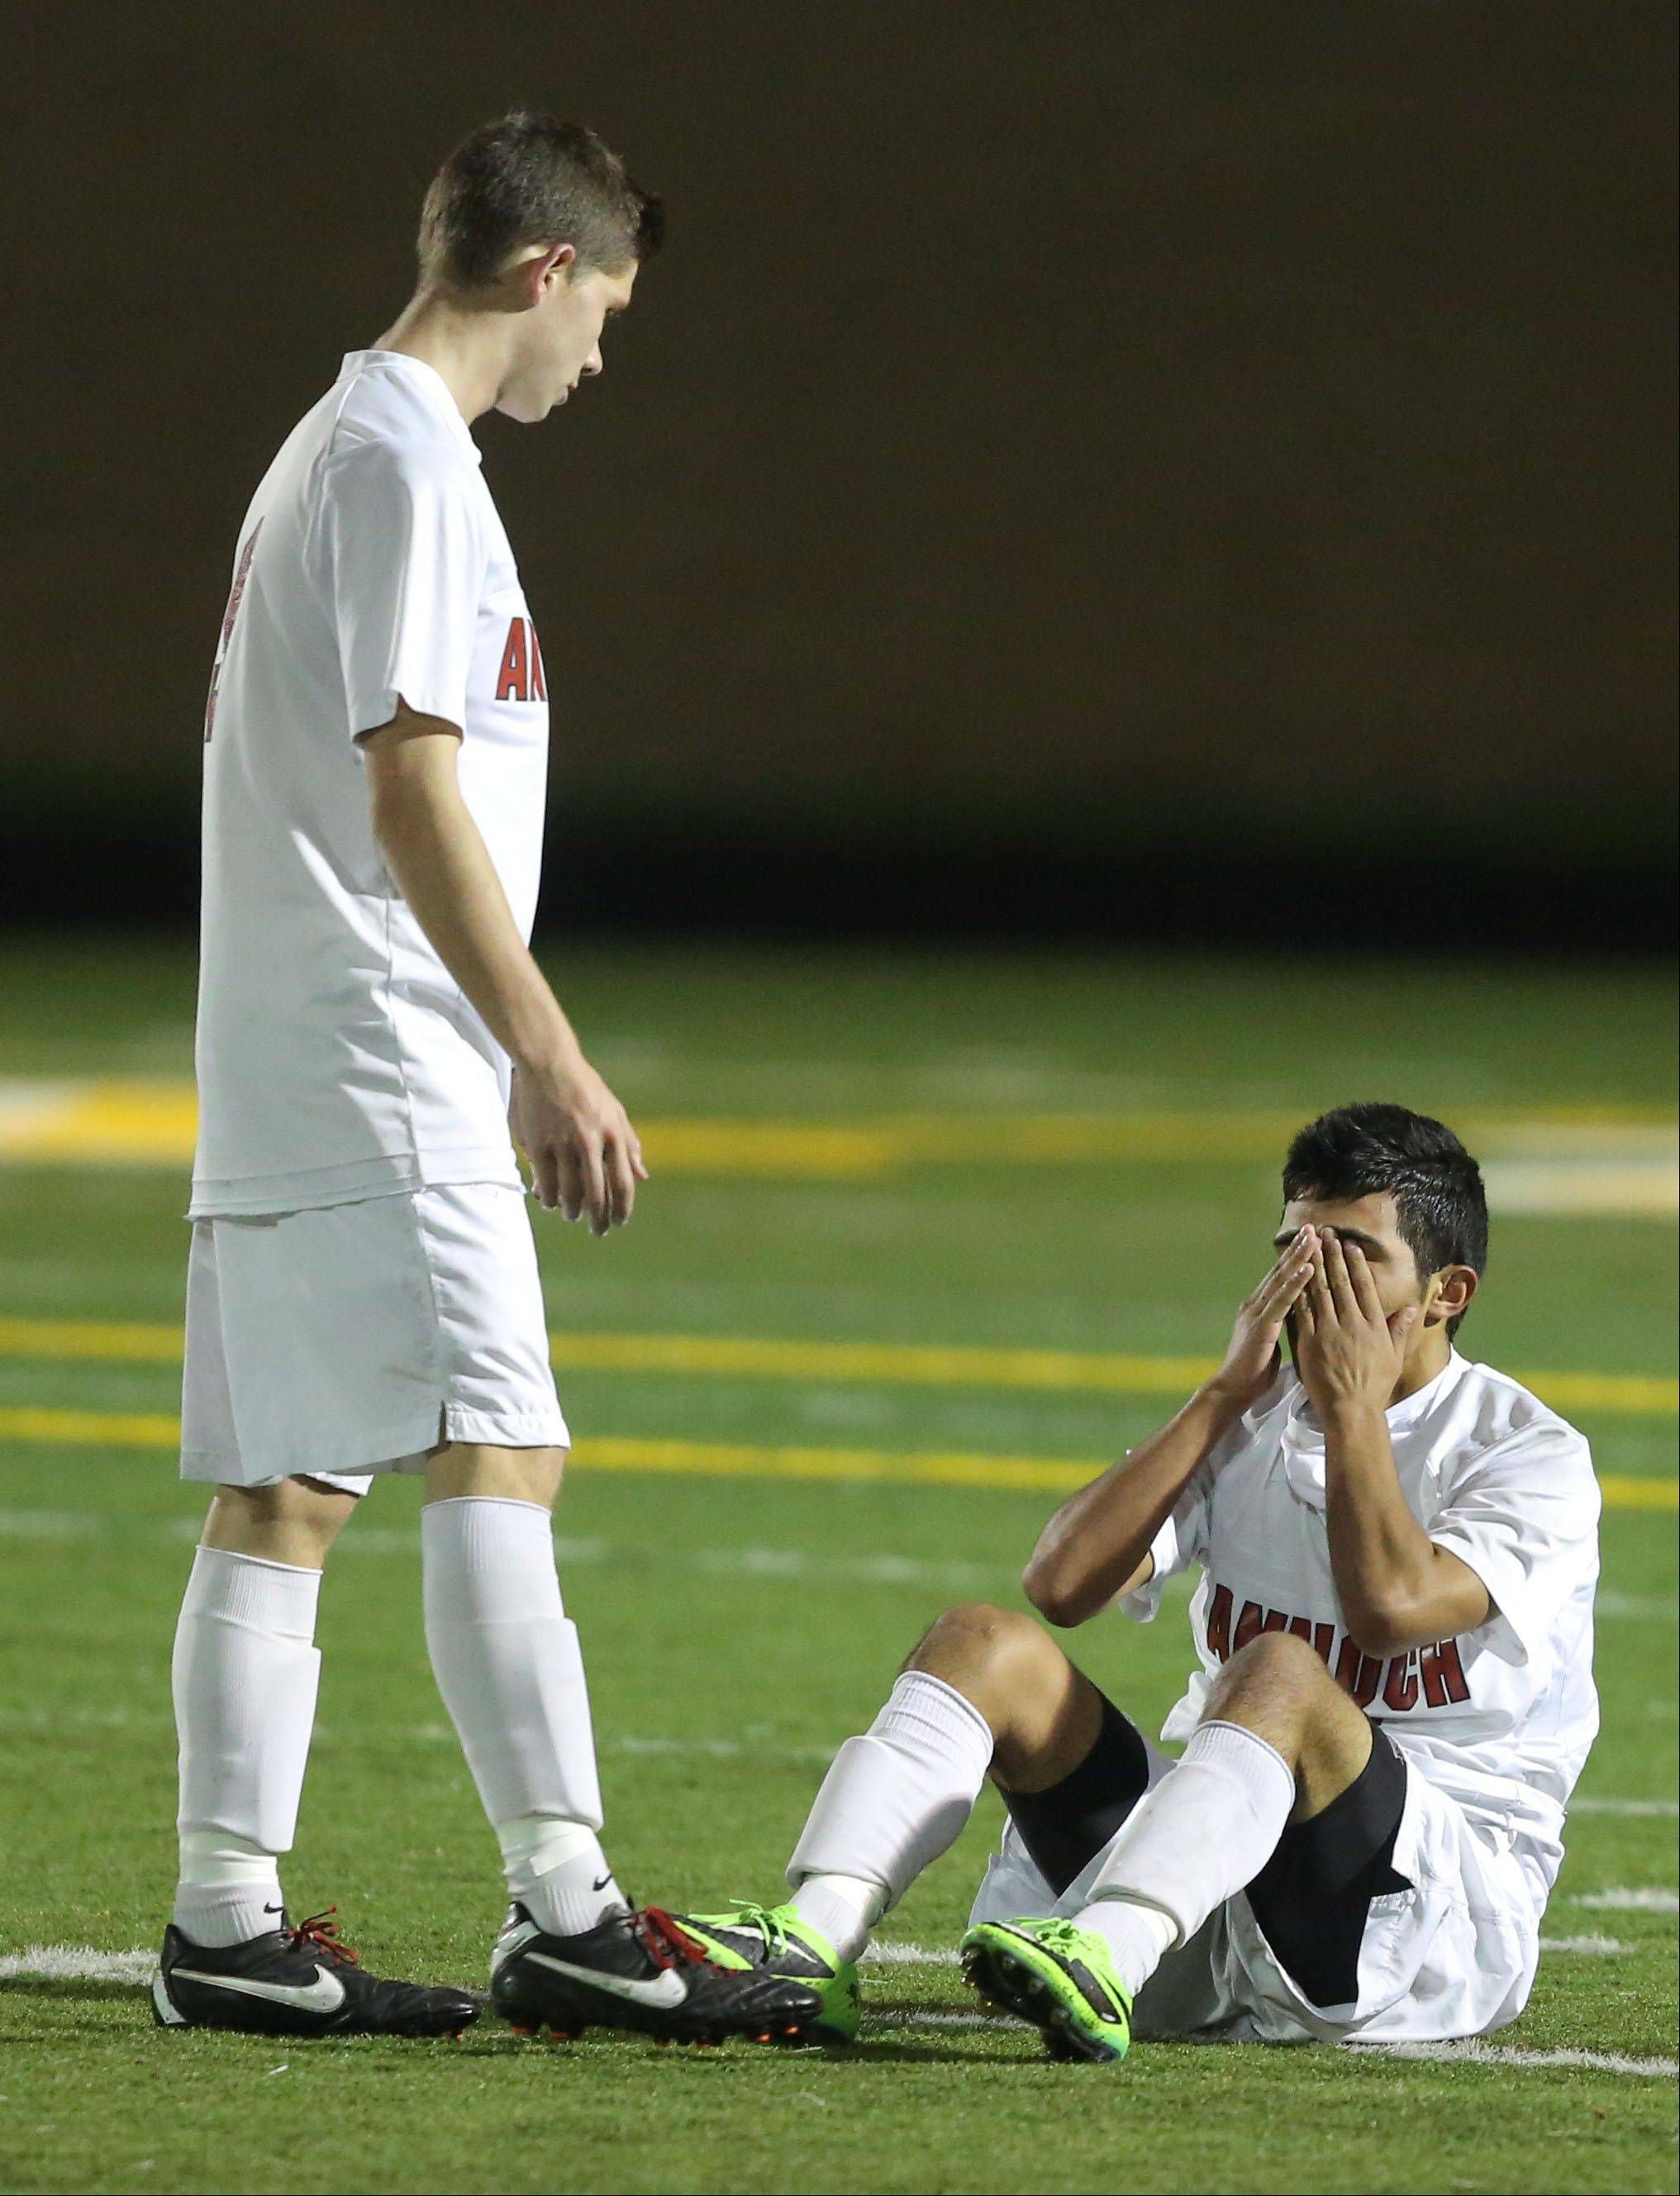 Steve Lundy/slundy@dailyherald.comAntioch's Krystian Streit, left, goes to console Iven Hernandez after the Sequoits fell to St. Ignatius 1-0 in the Class 2A supersectional Tuesday night at Stevenson.